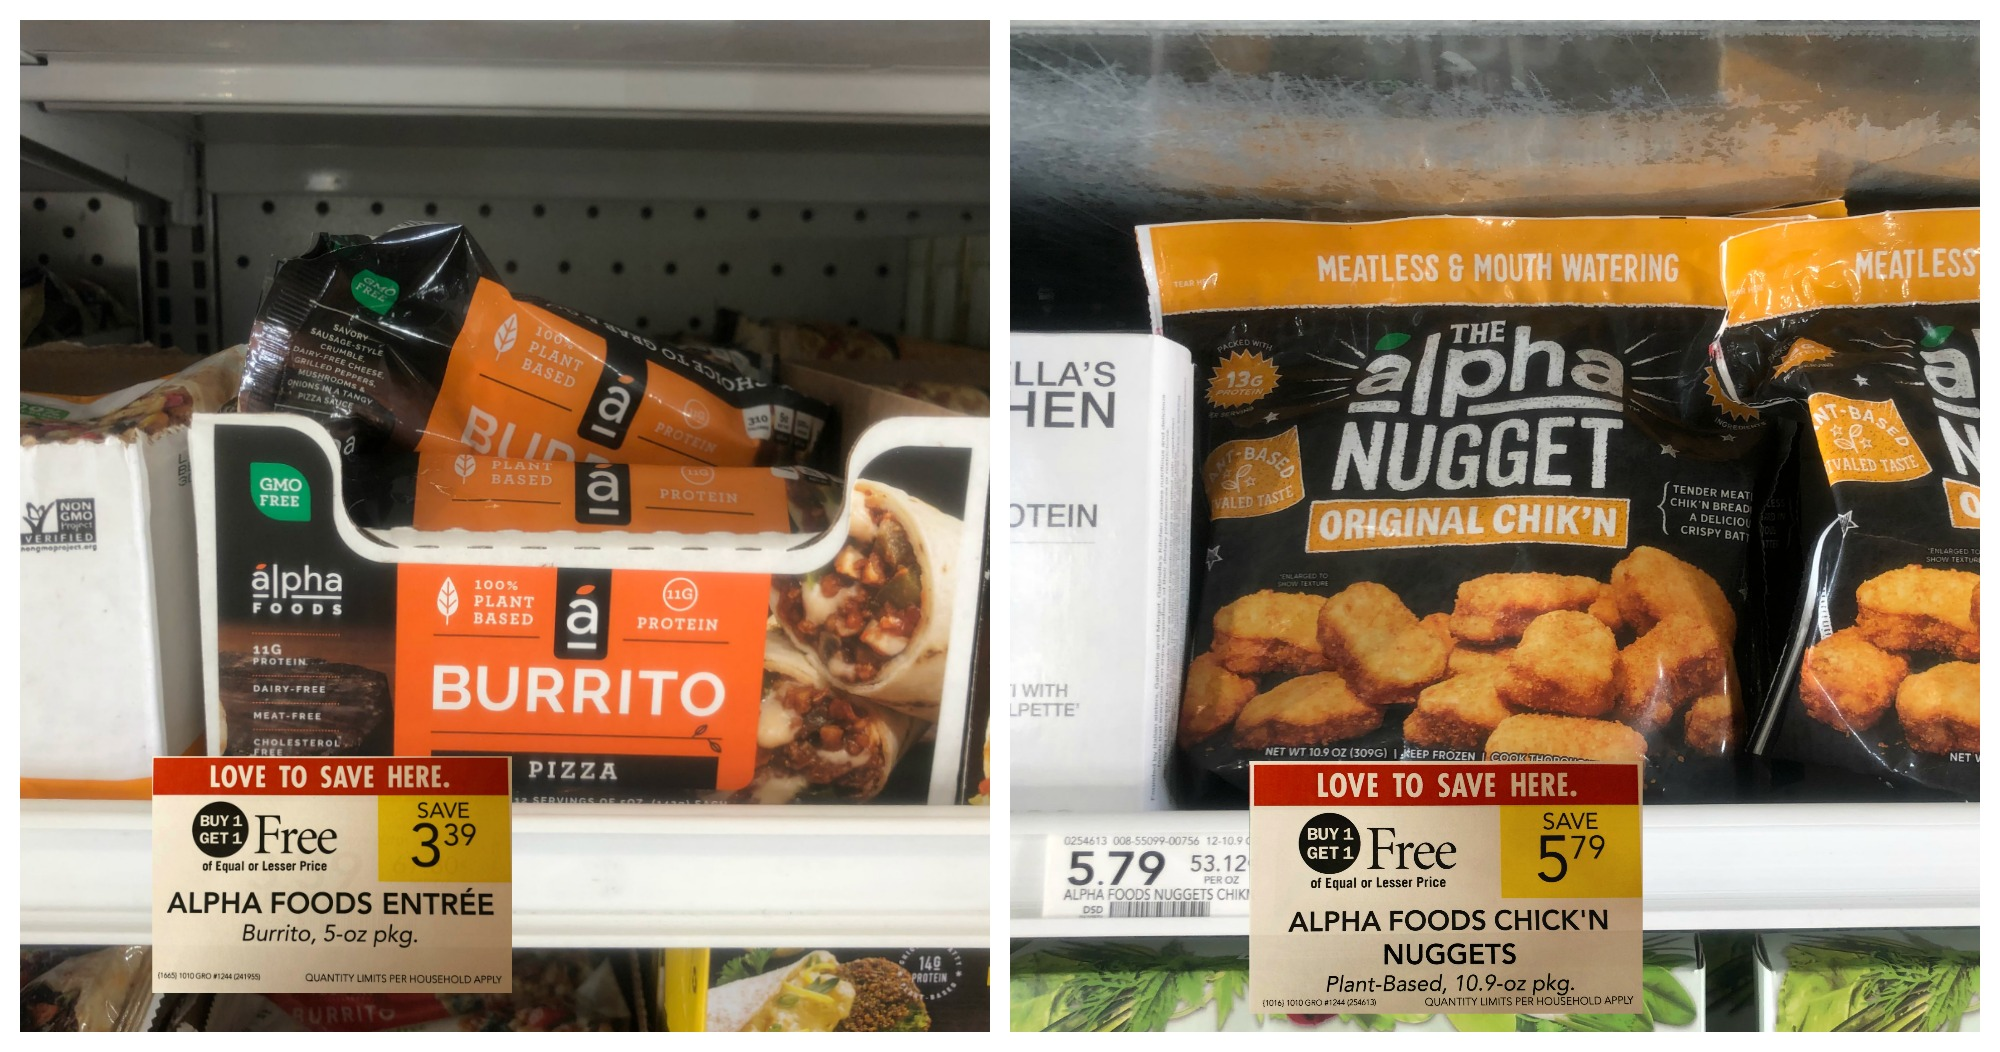 FREE Alpha Foods Burritos At Publix (Plus 90¢ Chick'n Nuggets) on I Heart Publix